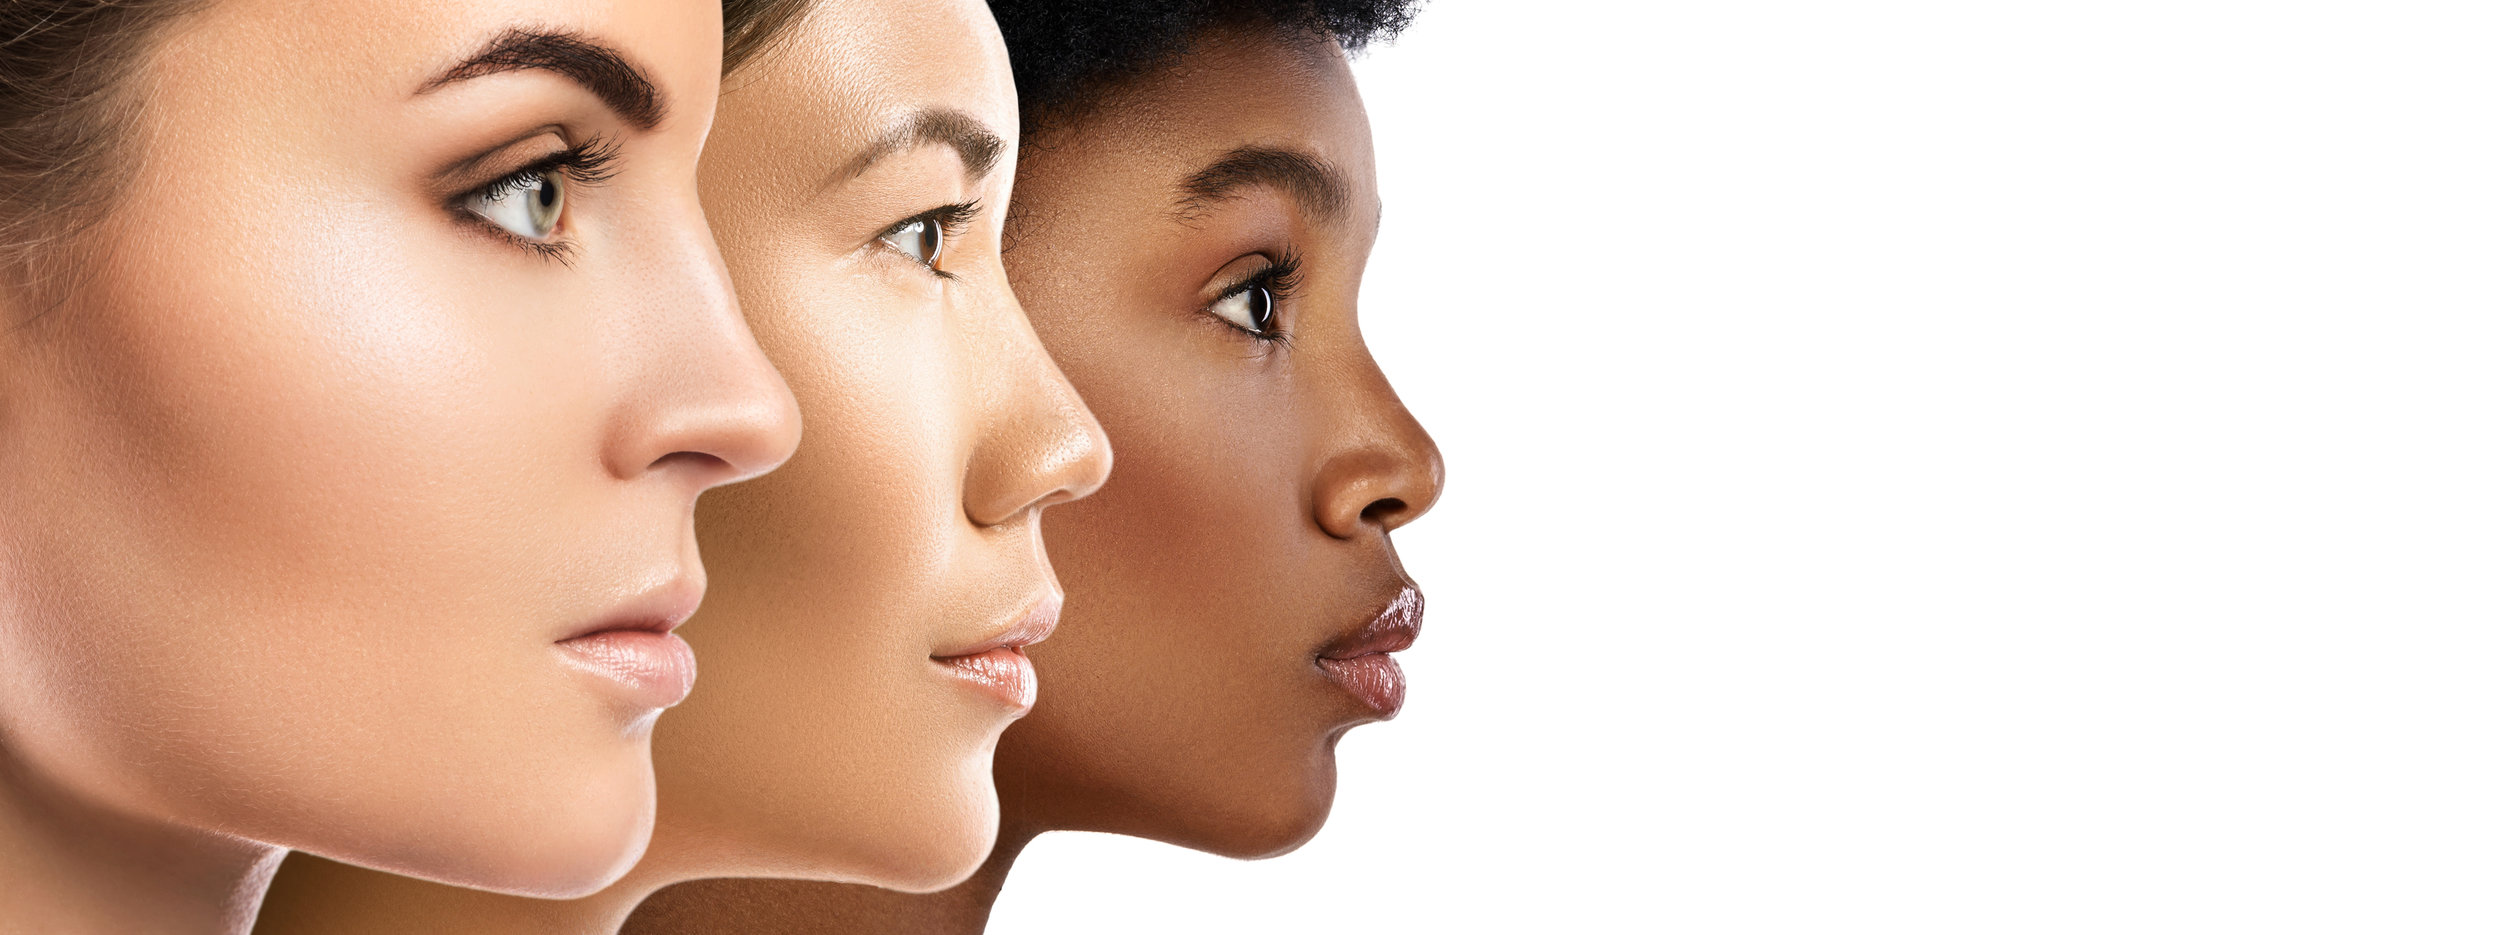 Your body is unique! - Our Skintel takes the guess work out of diagnosing your skin type